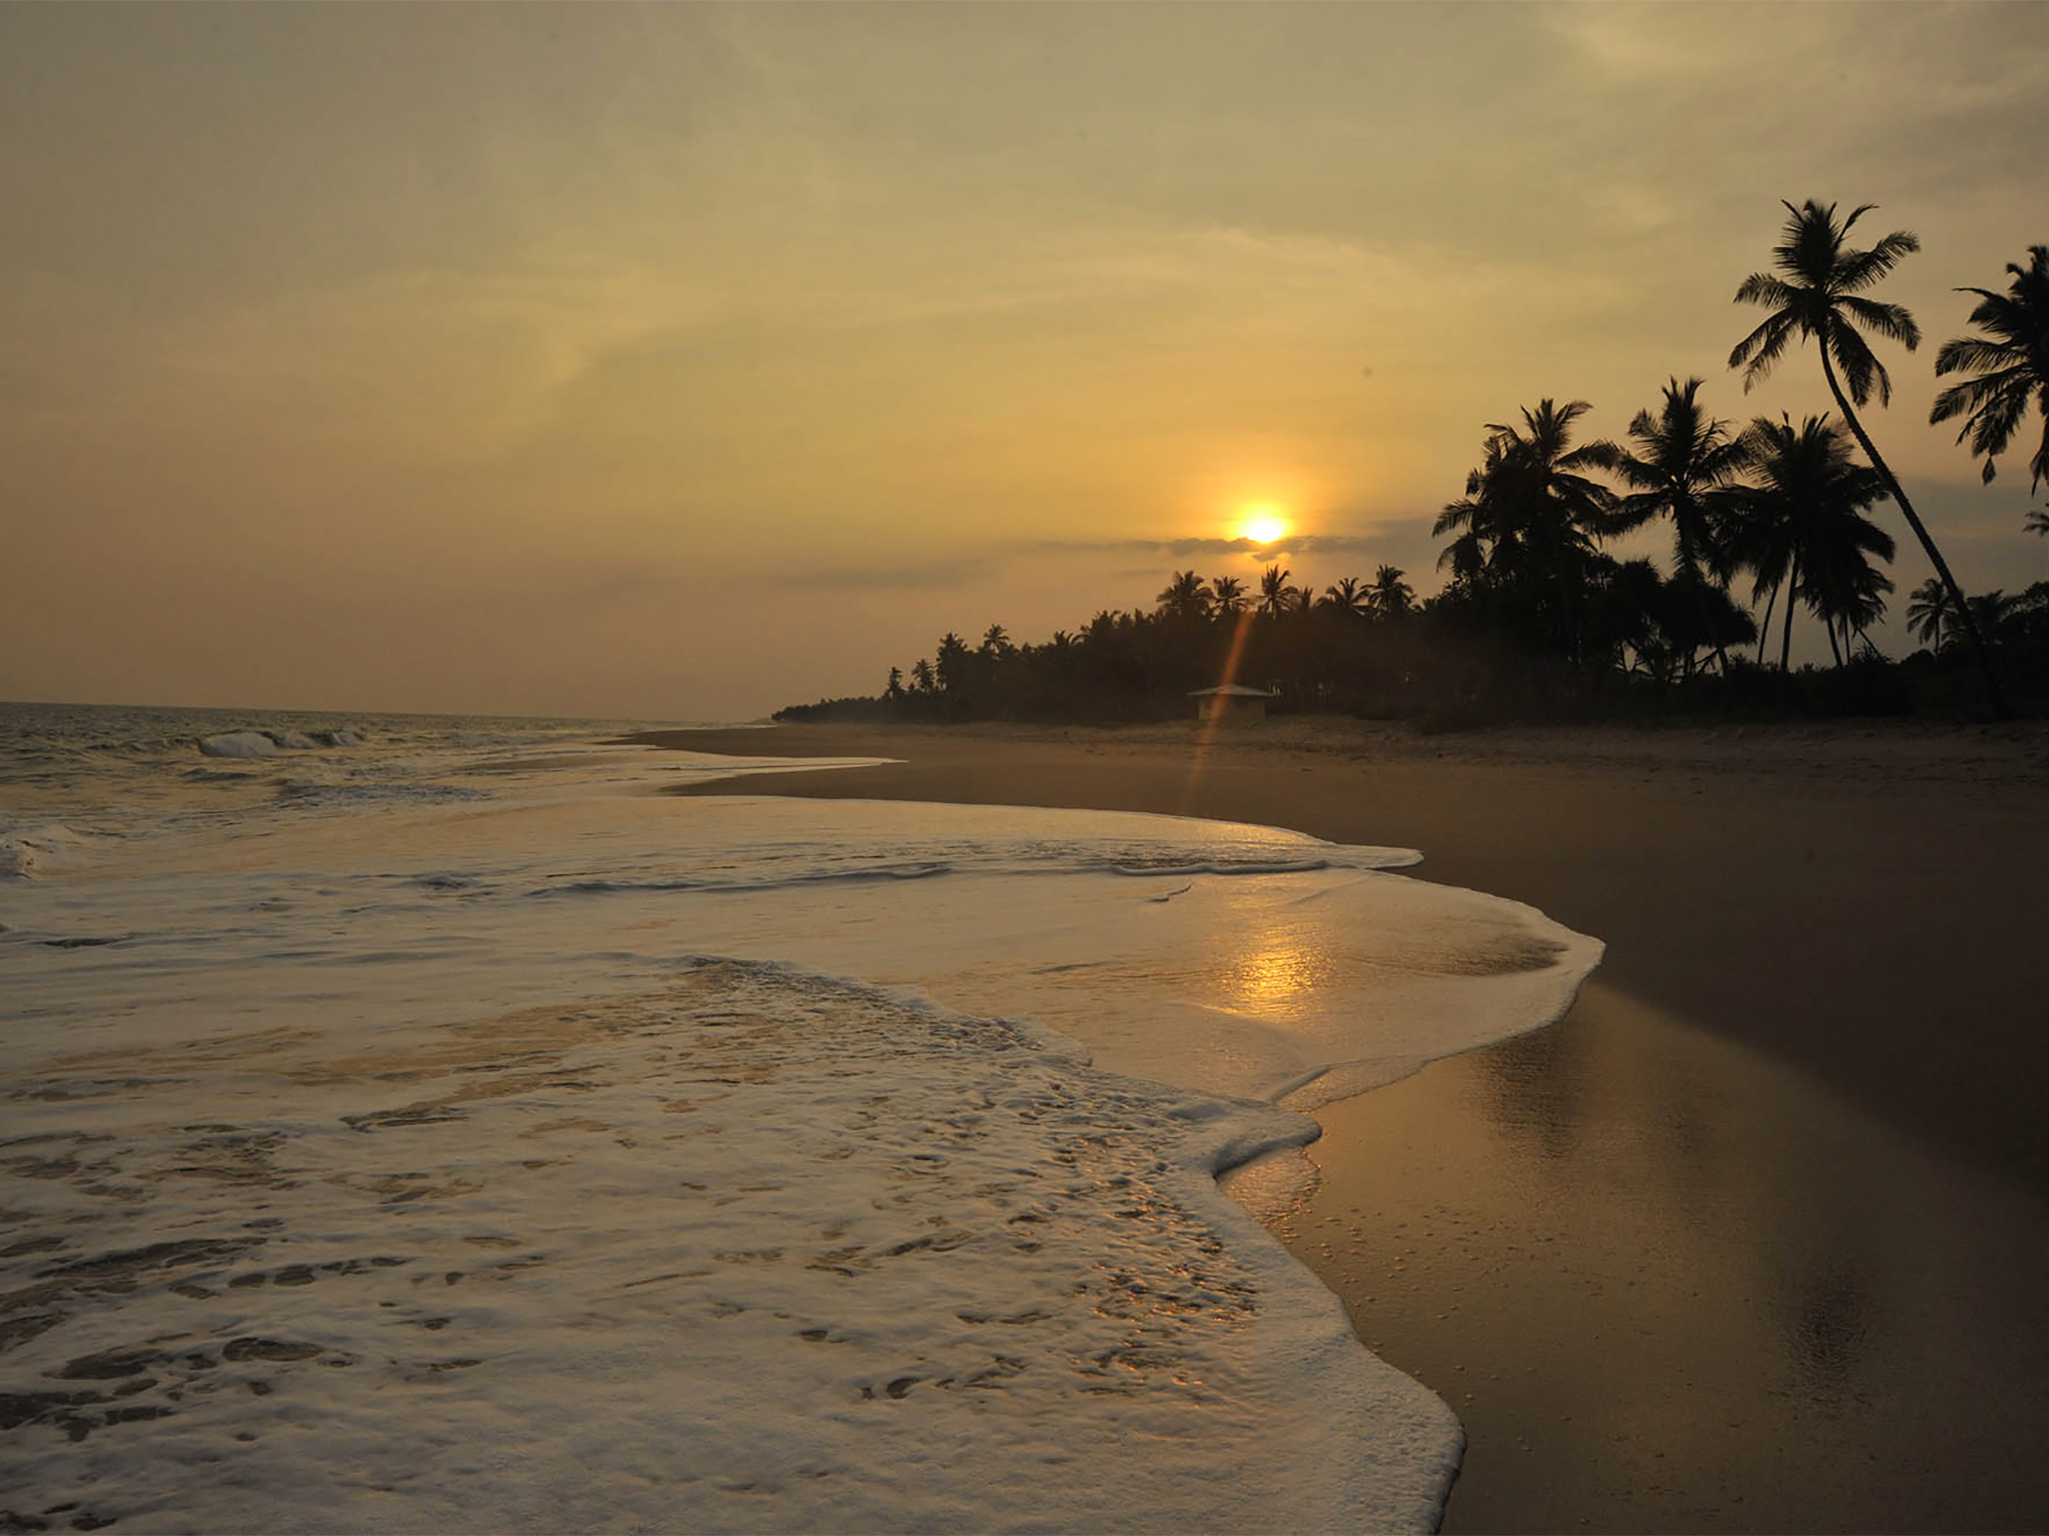 Oceans Edge - The beach at sunset - Ocean's Edge, Tangalle, South Coast